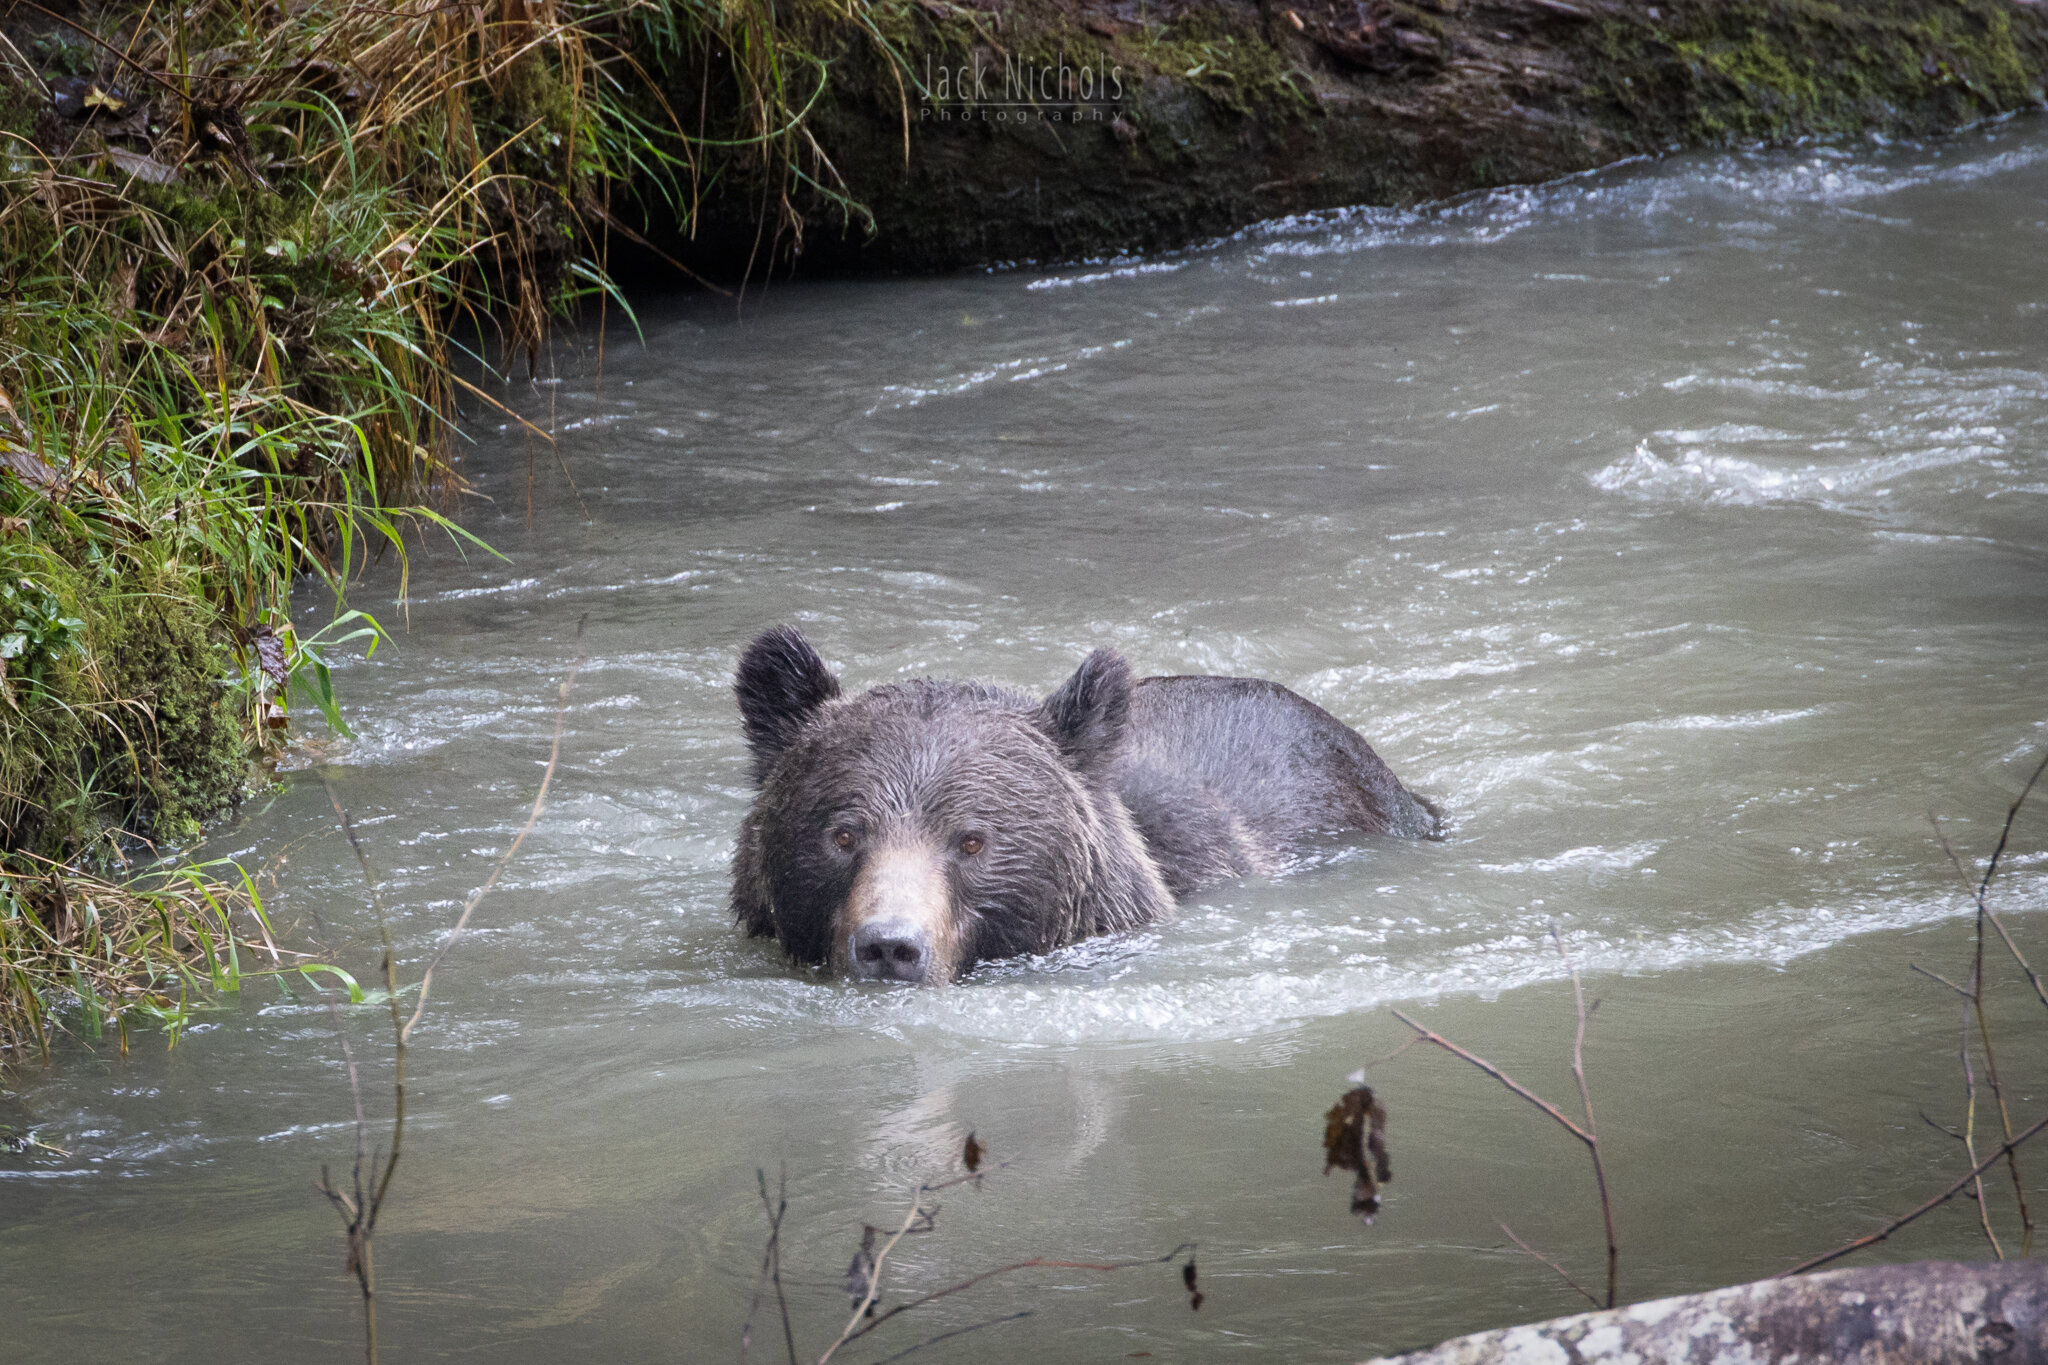 Campbell River, Toba Inlet - Grizzly bear swimming towards camera in the river-20190908.jpg